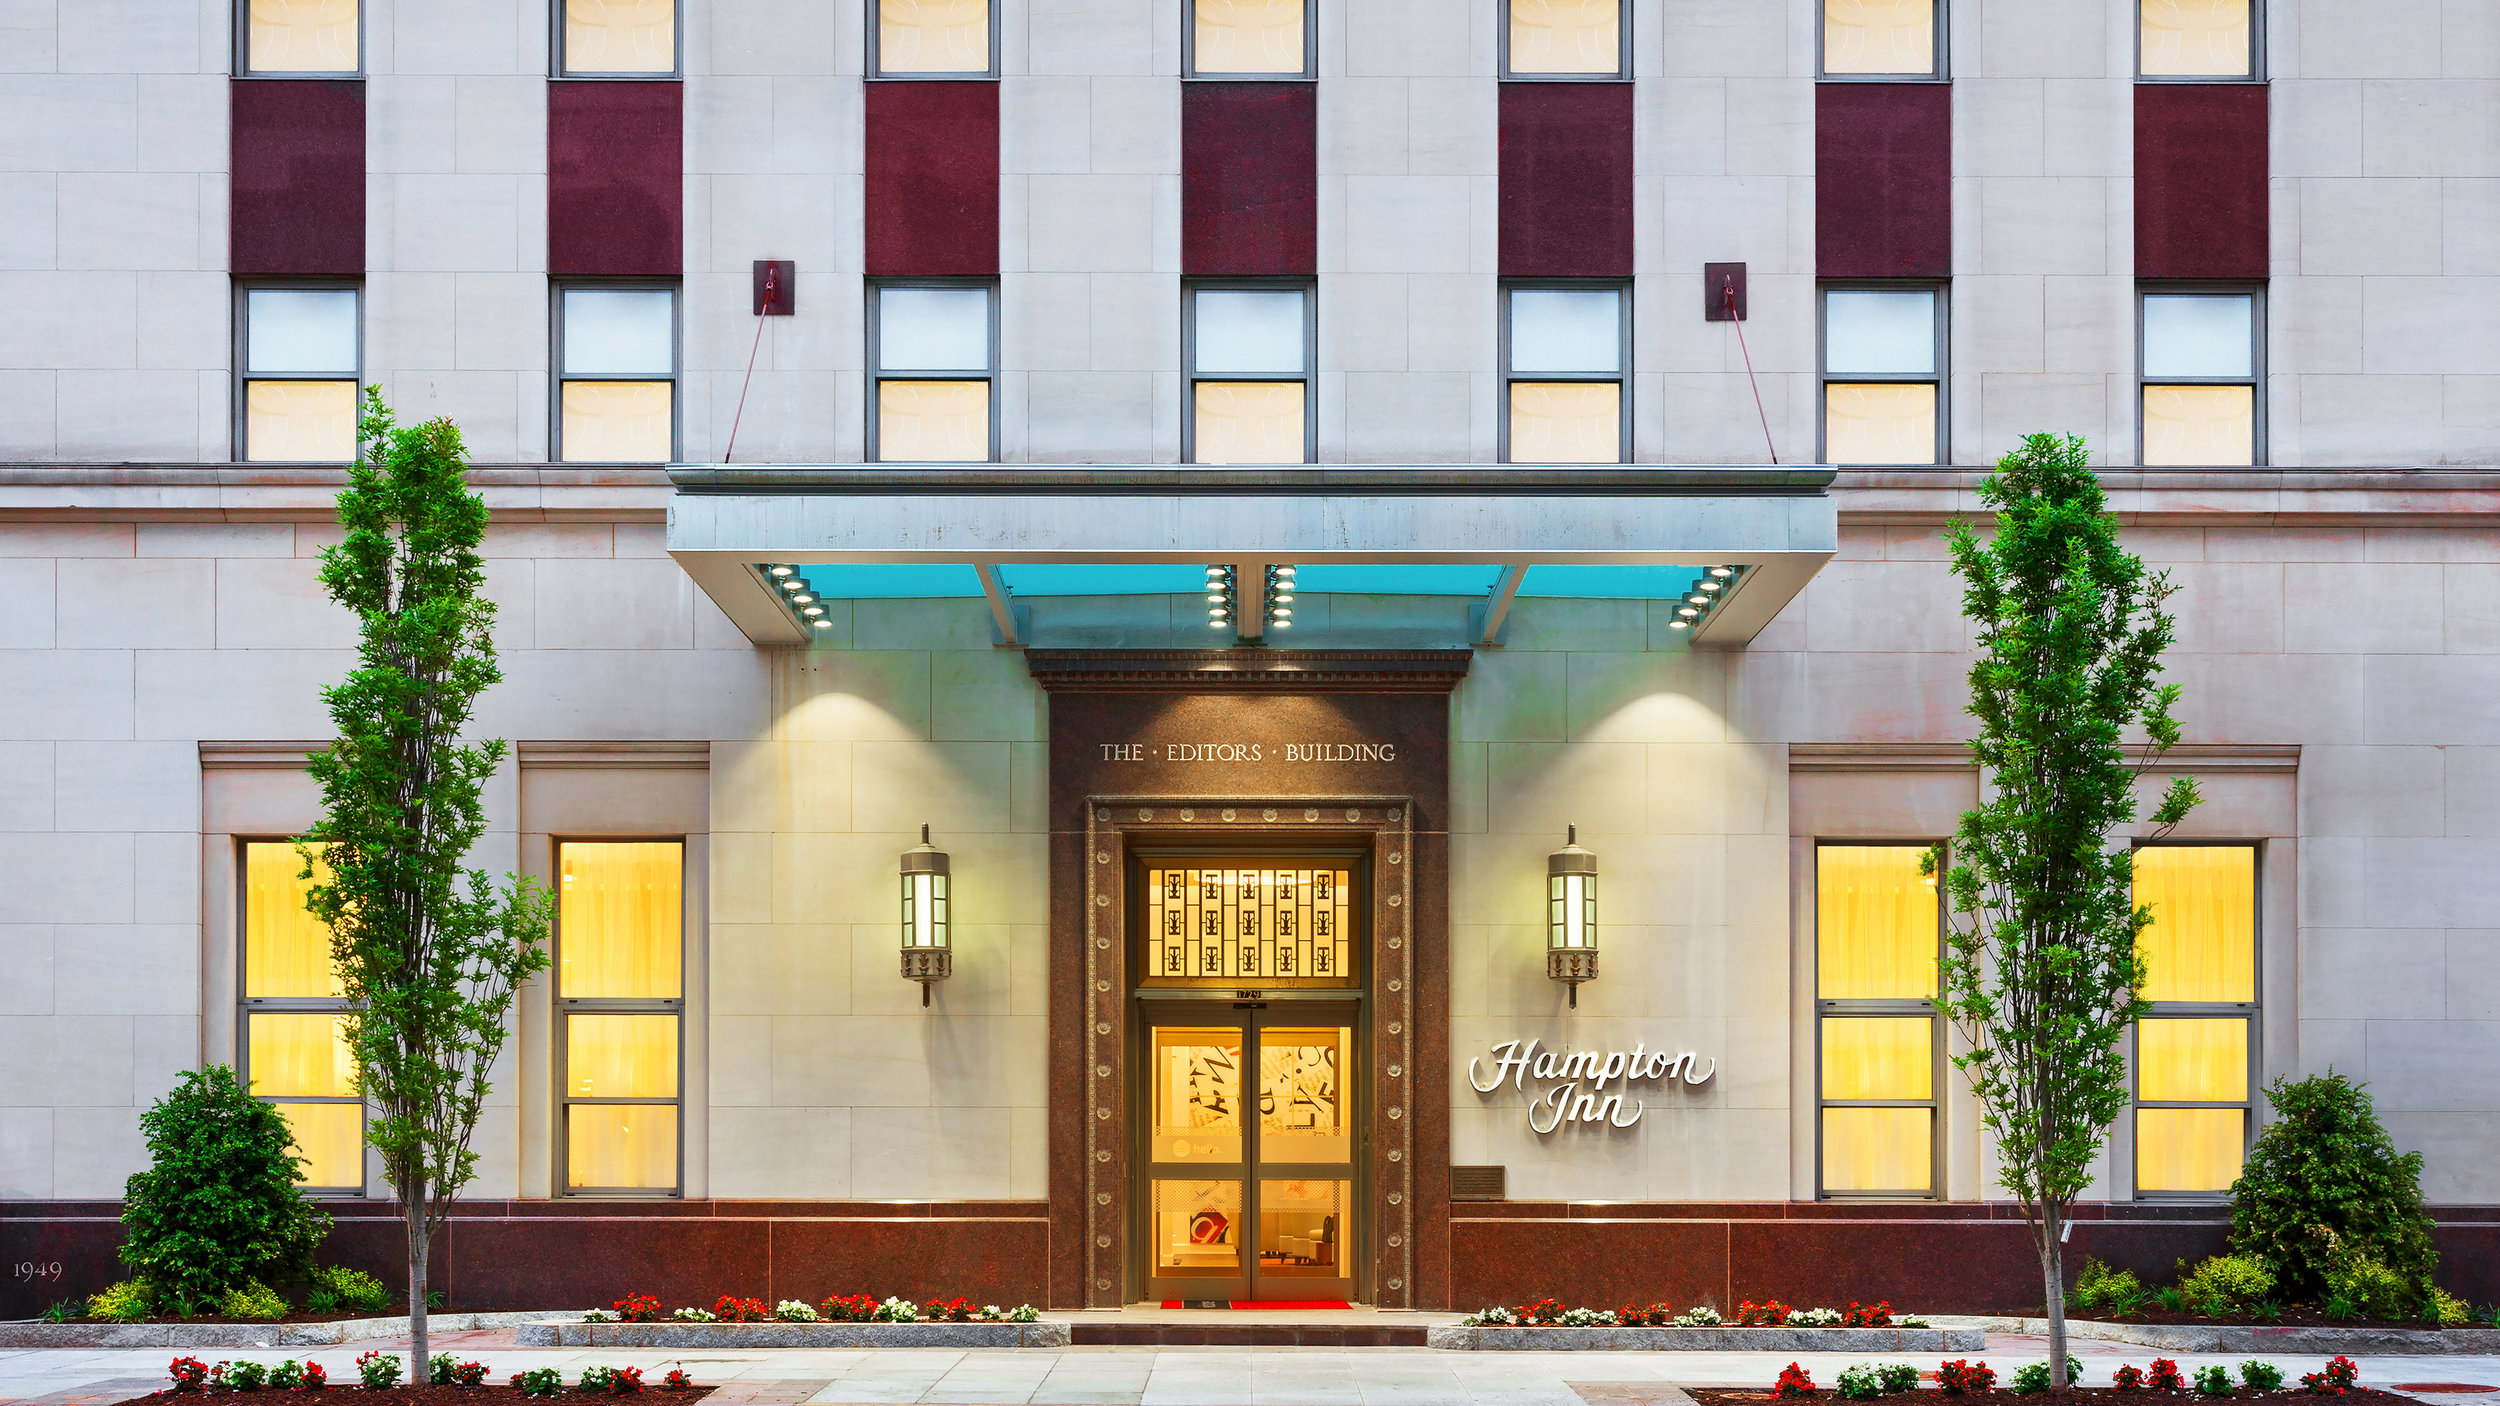 Hampton-Inn-DC-new-Color_b.jpg